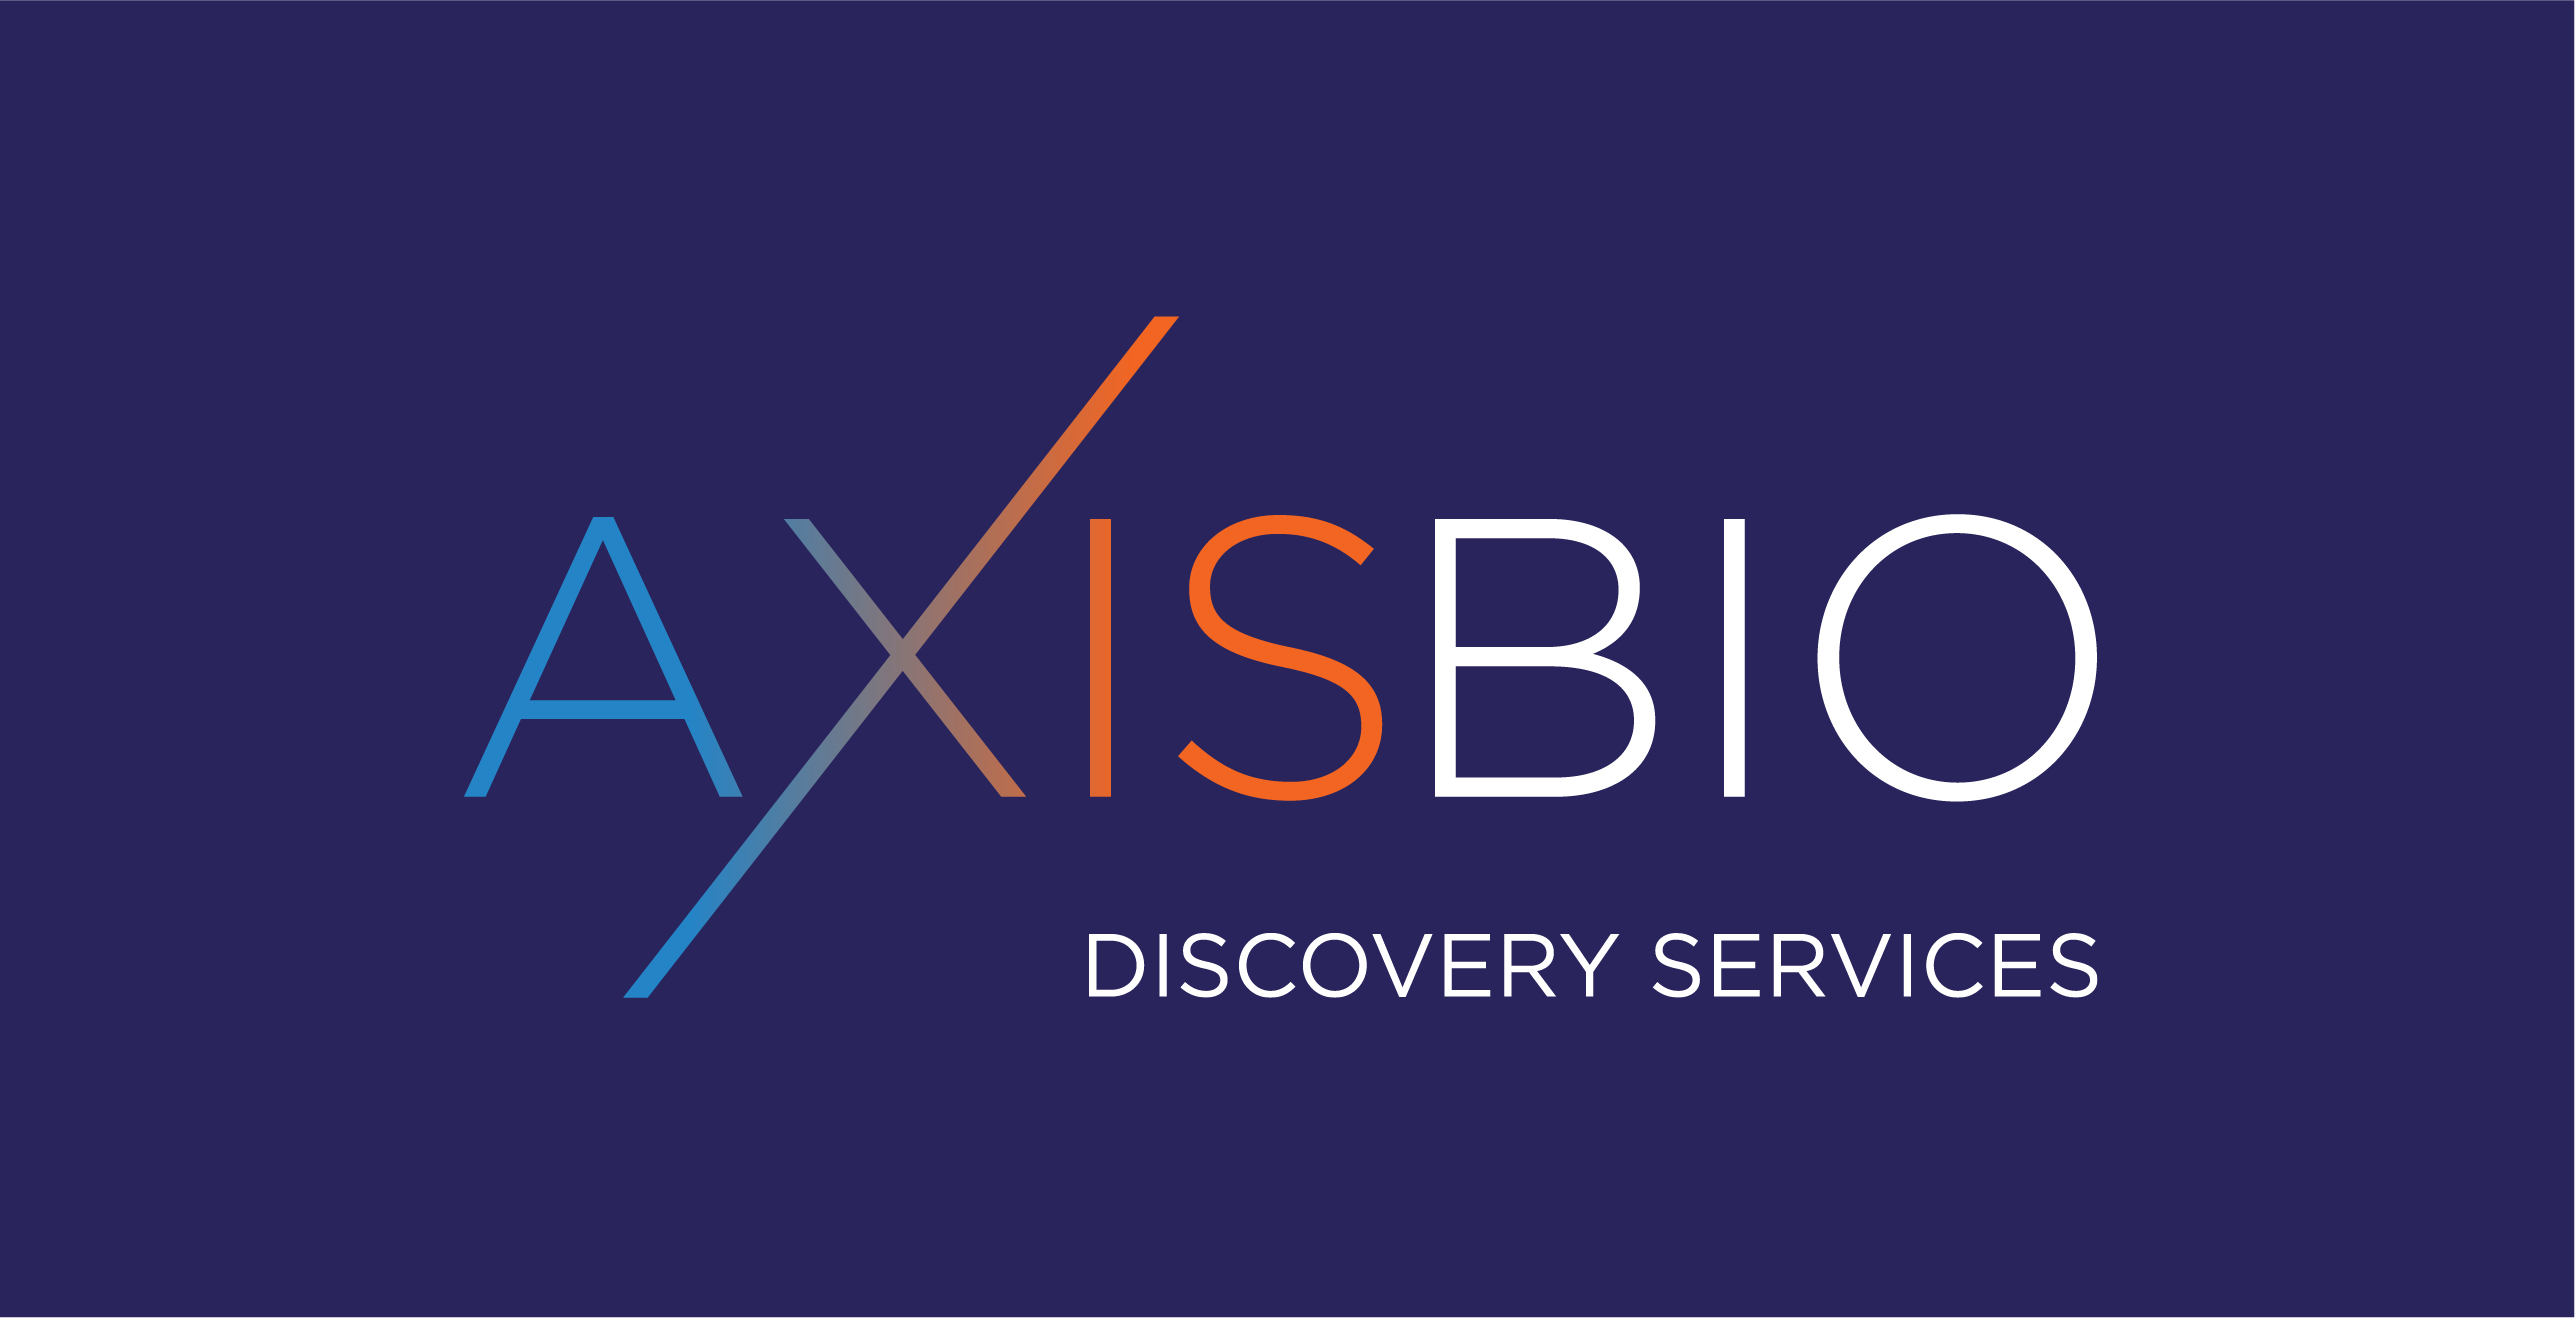 Image result for axis bio Services logo